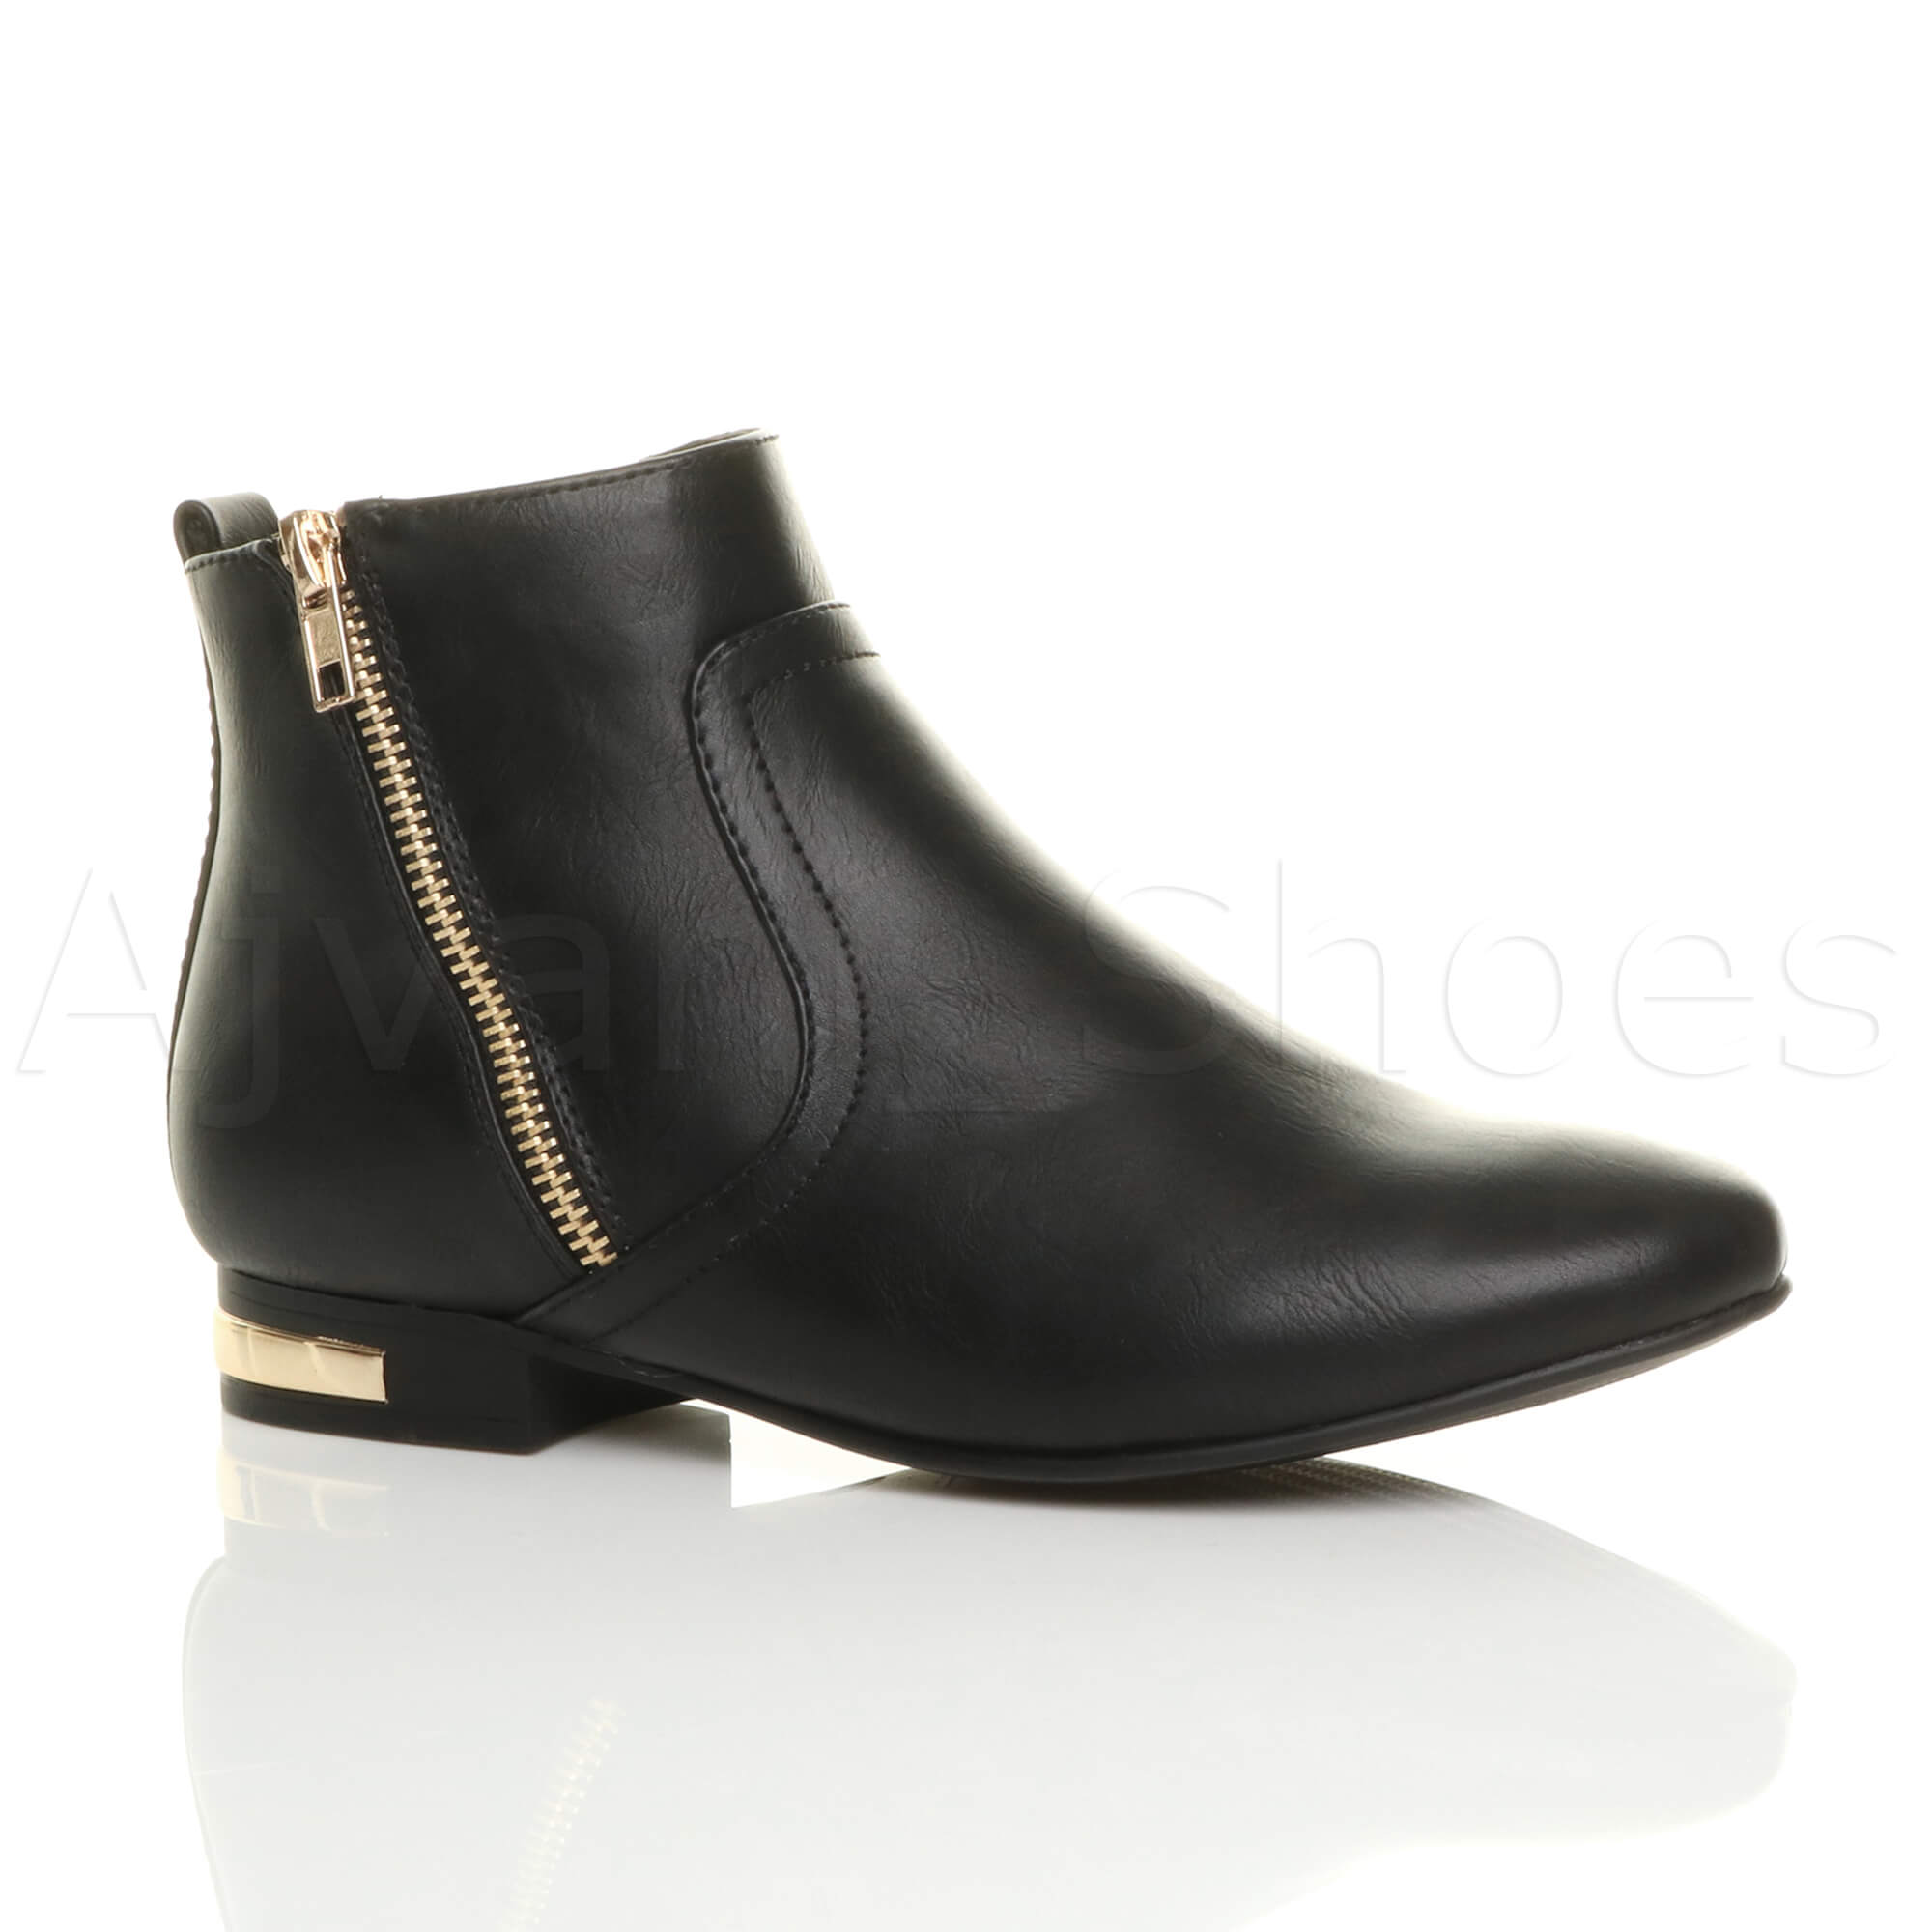 WOMENS LADIES LOW HEEL GOLD ZIP CONTRAST RIDING PIXIE ANKLE BOOTS BOOTIES SIZE